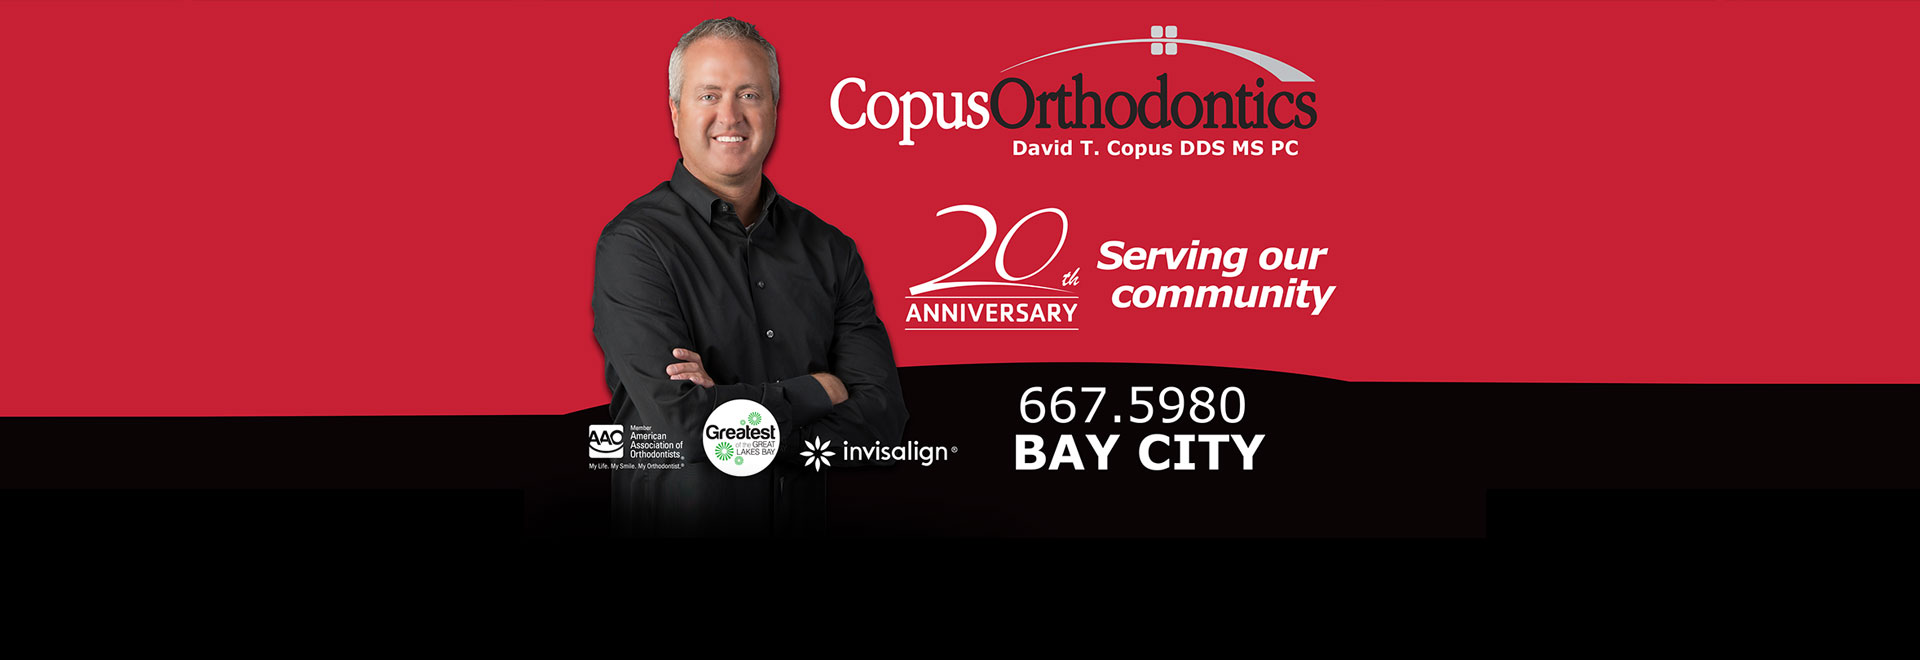 Copus Orthodontics 20th Anniversary